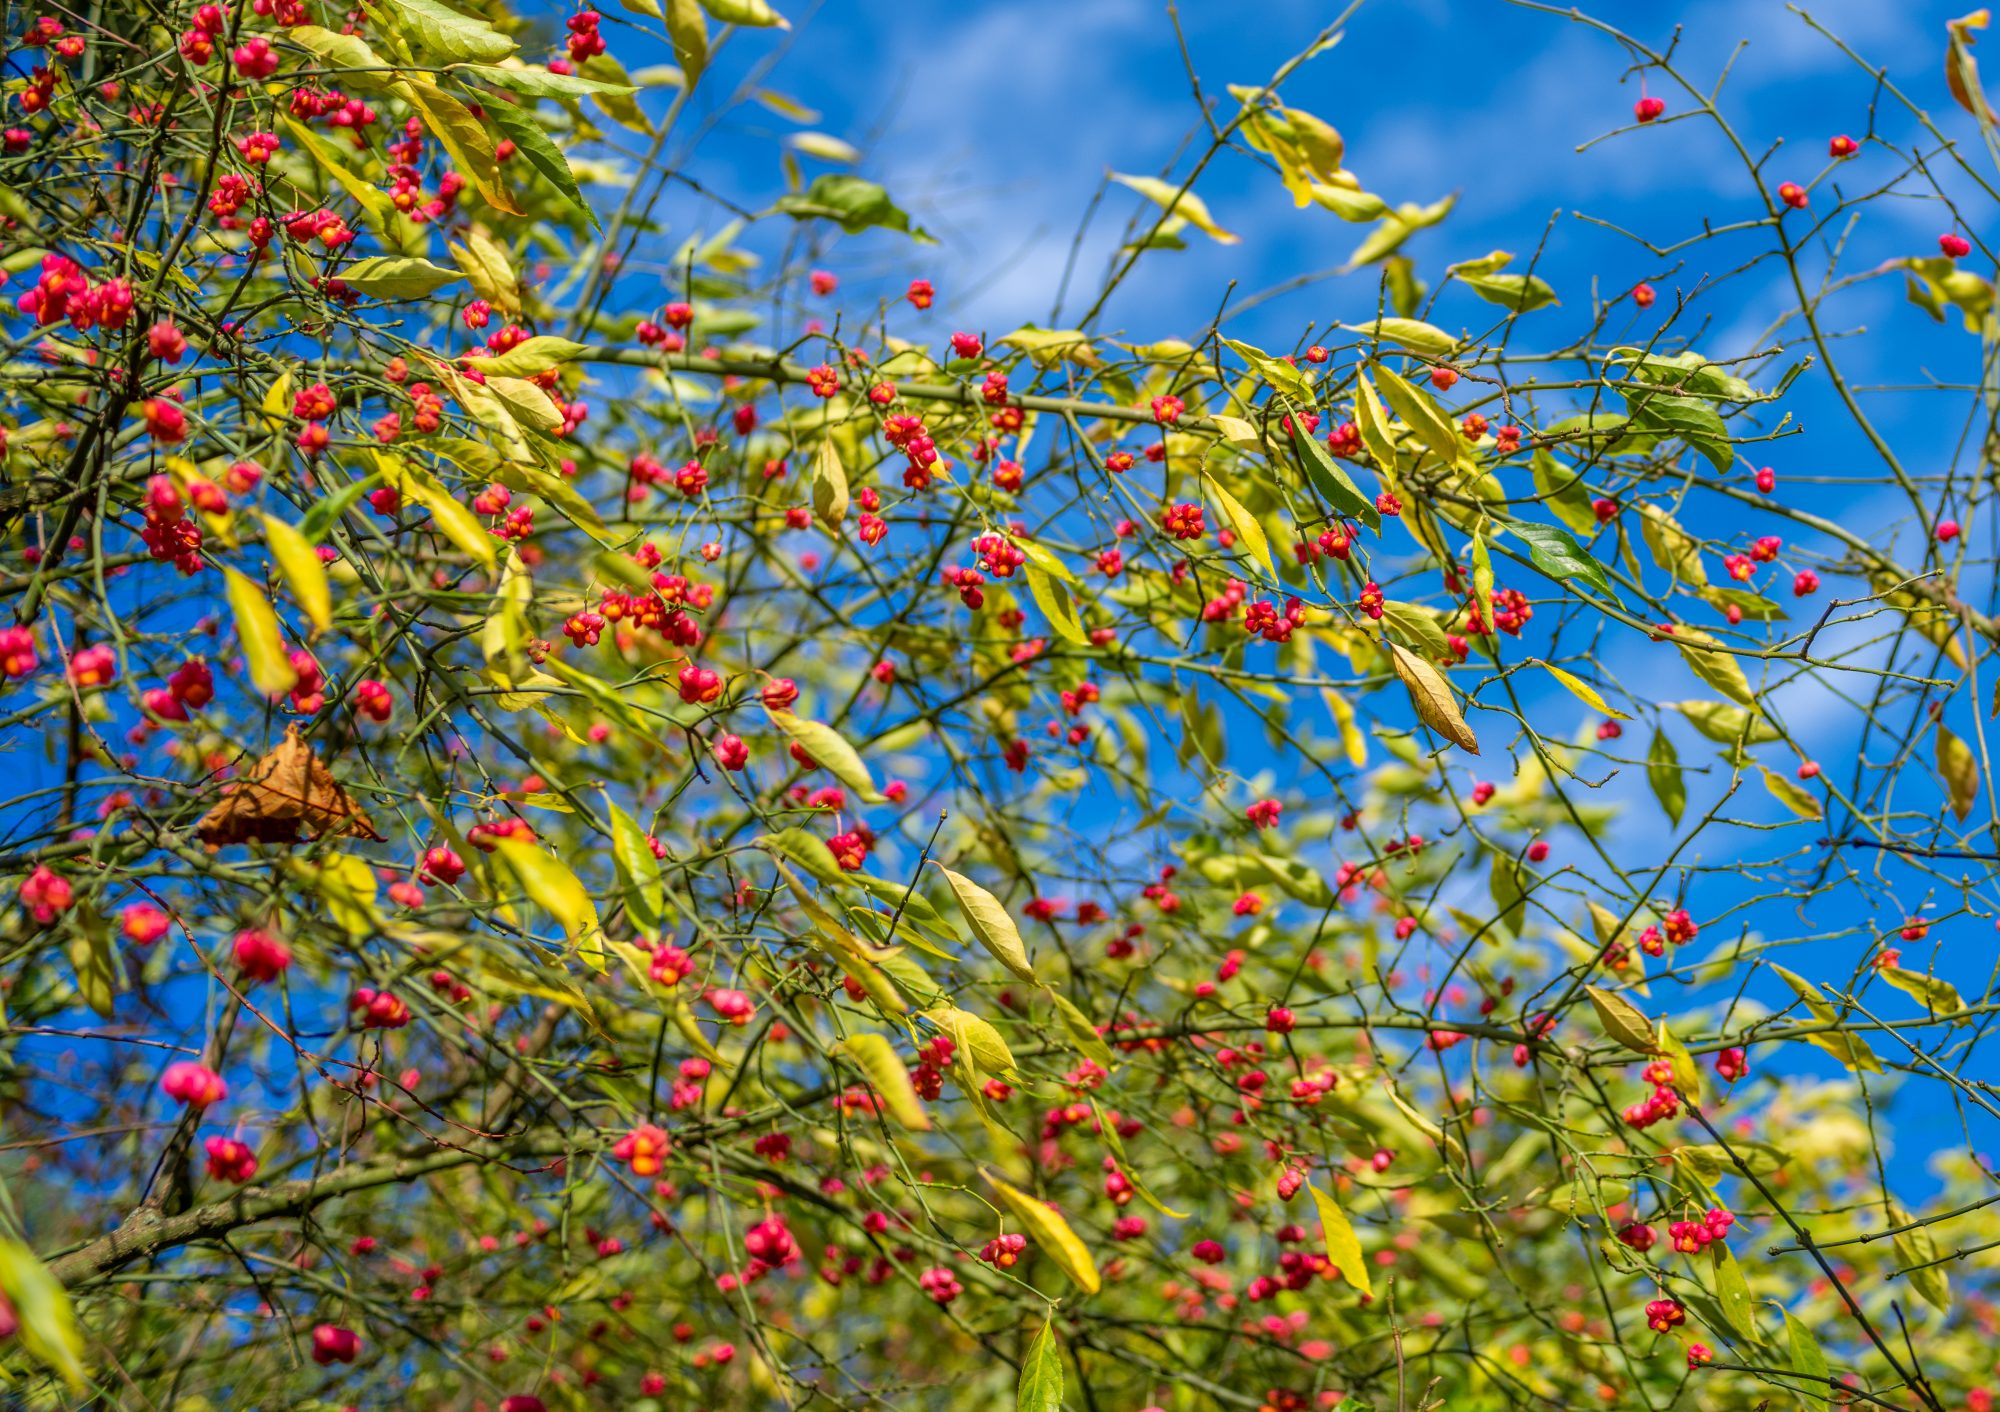 spindle tree, or euonymus tree, in bloom